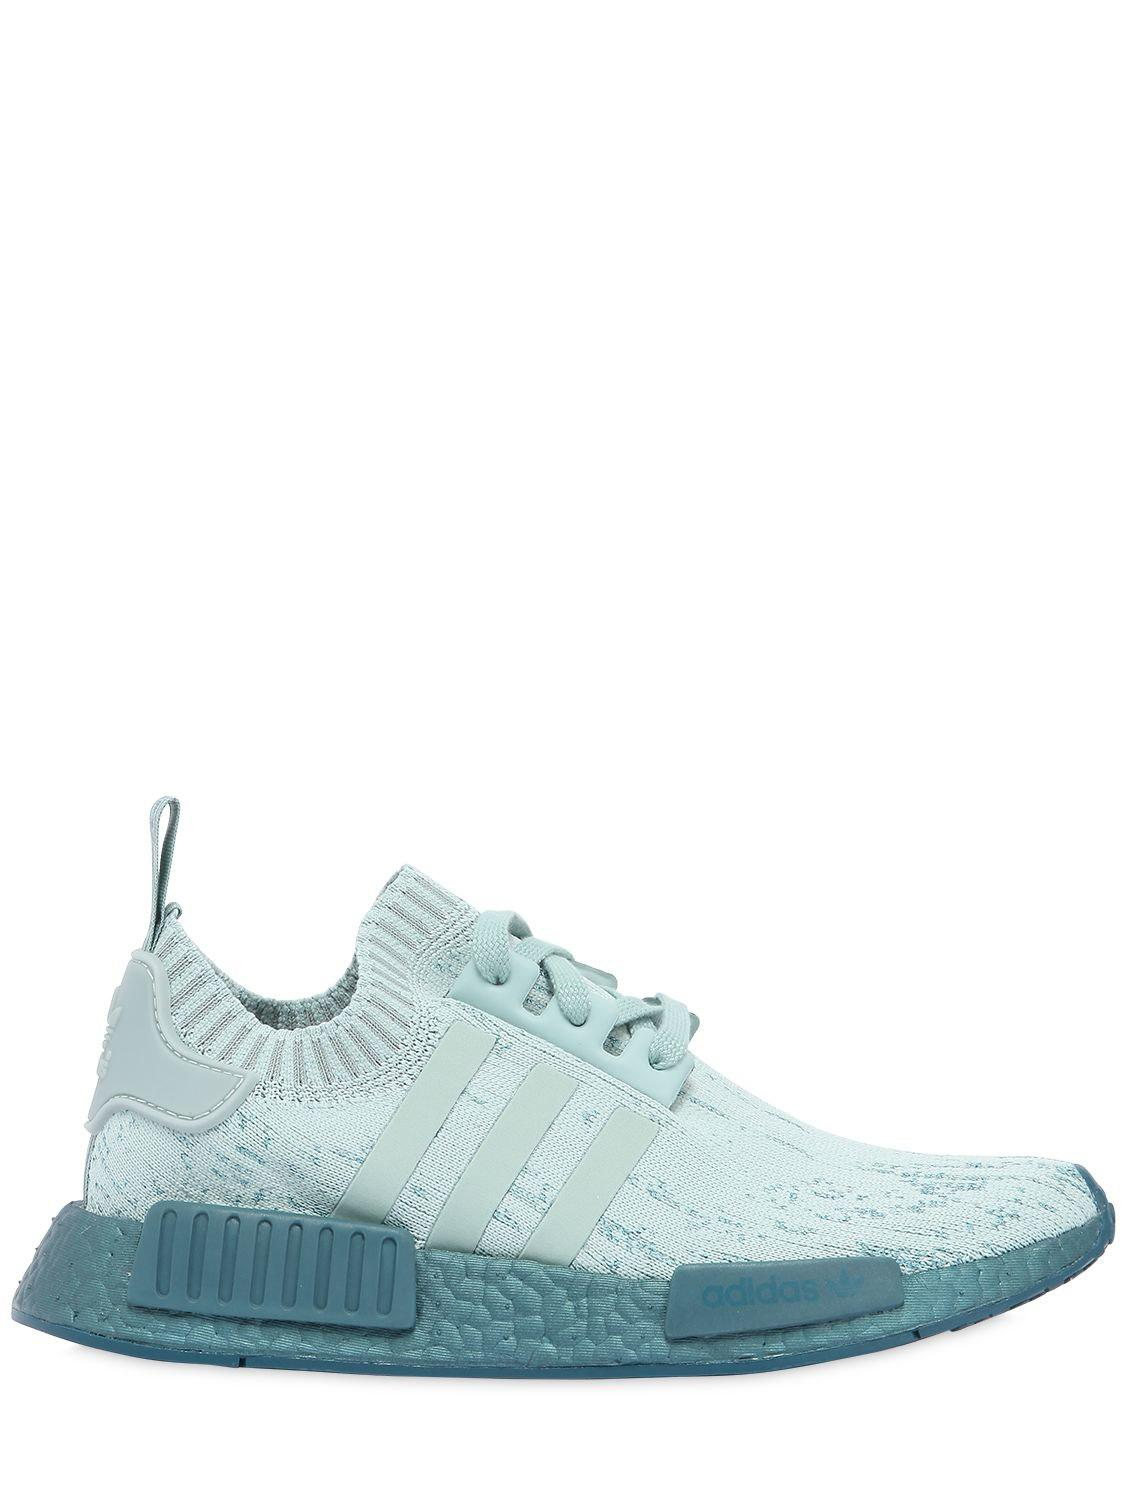 87563667576be Lyst - adidas Originals Nmd R1 Pk Stretch Mesh Sneakers in Blue